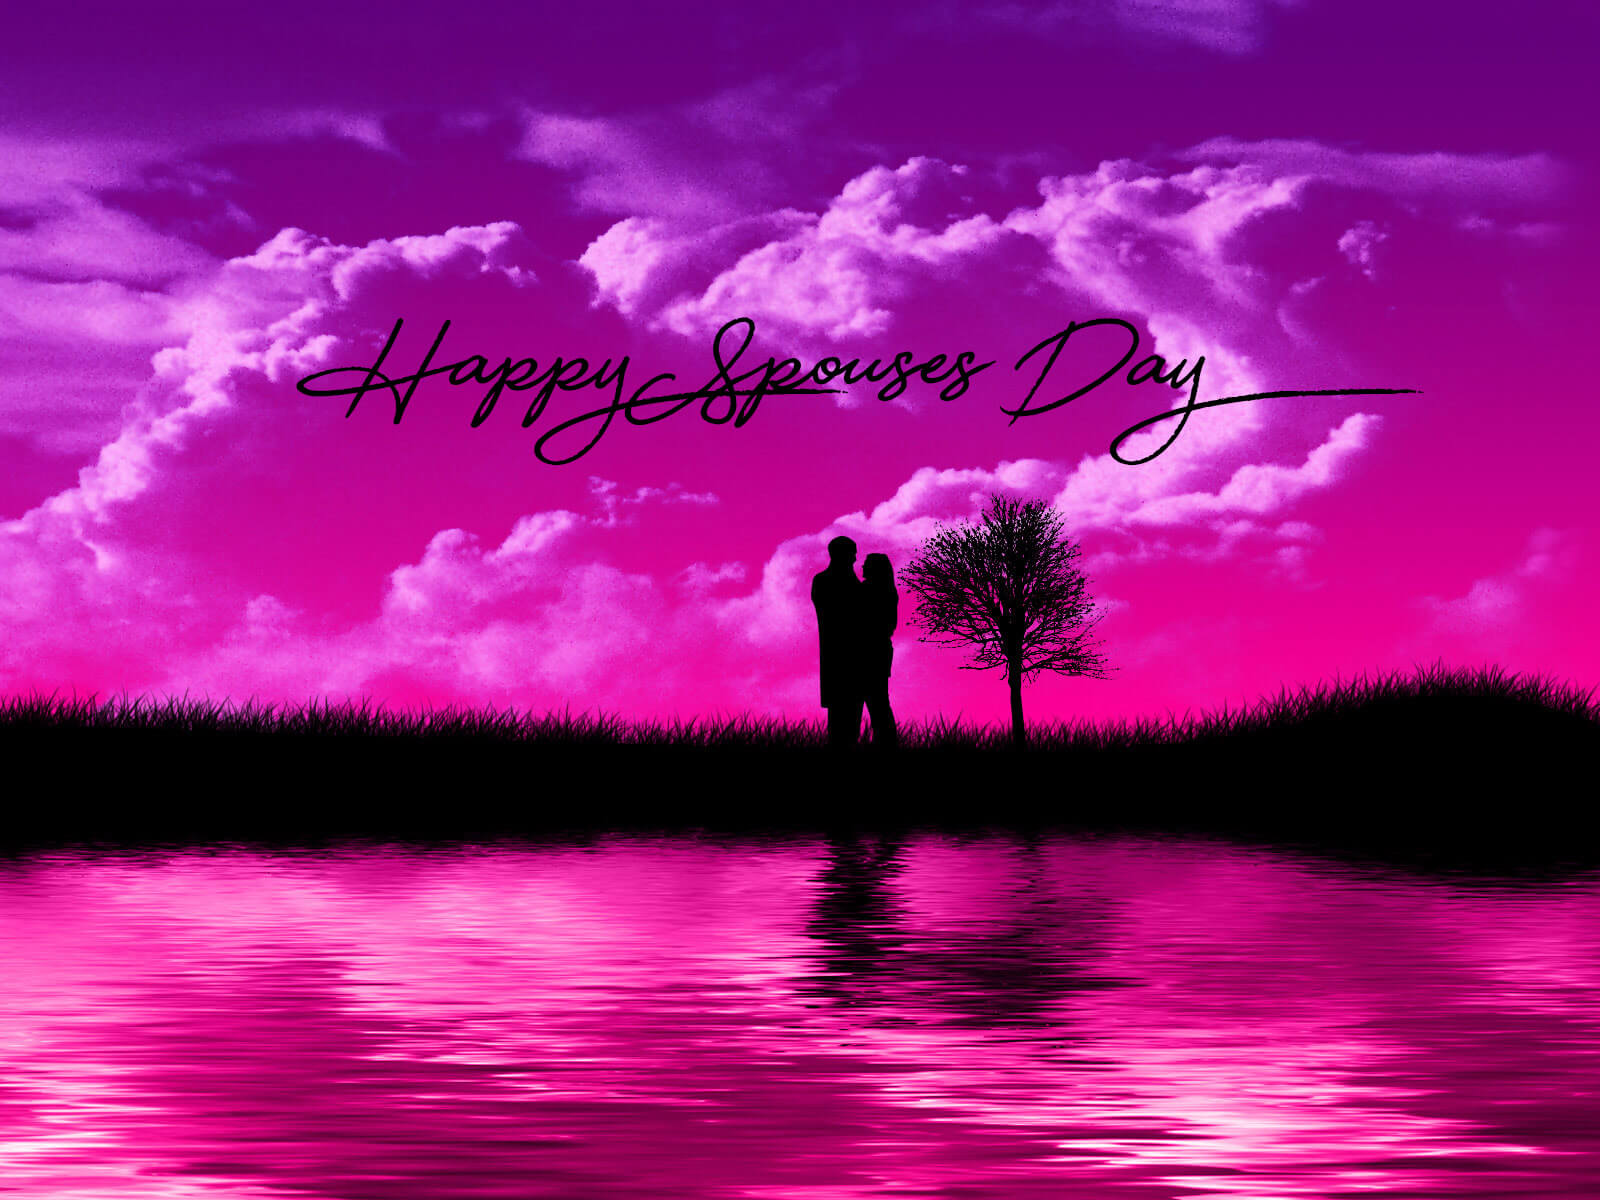 happy spouses day greetings wishes romantic love celebration hd wallpaper